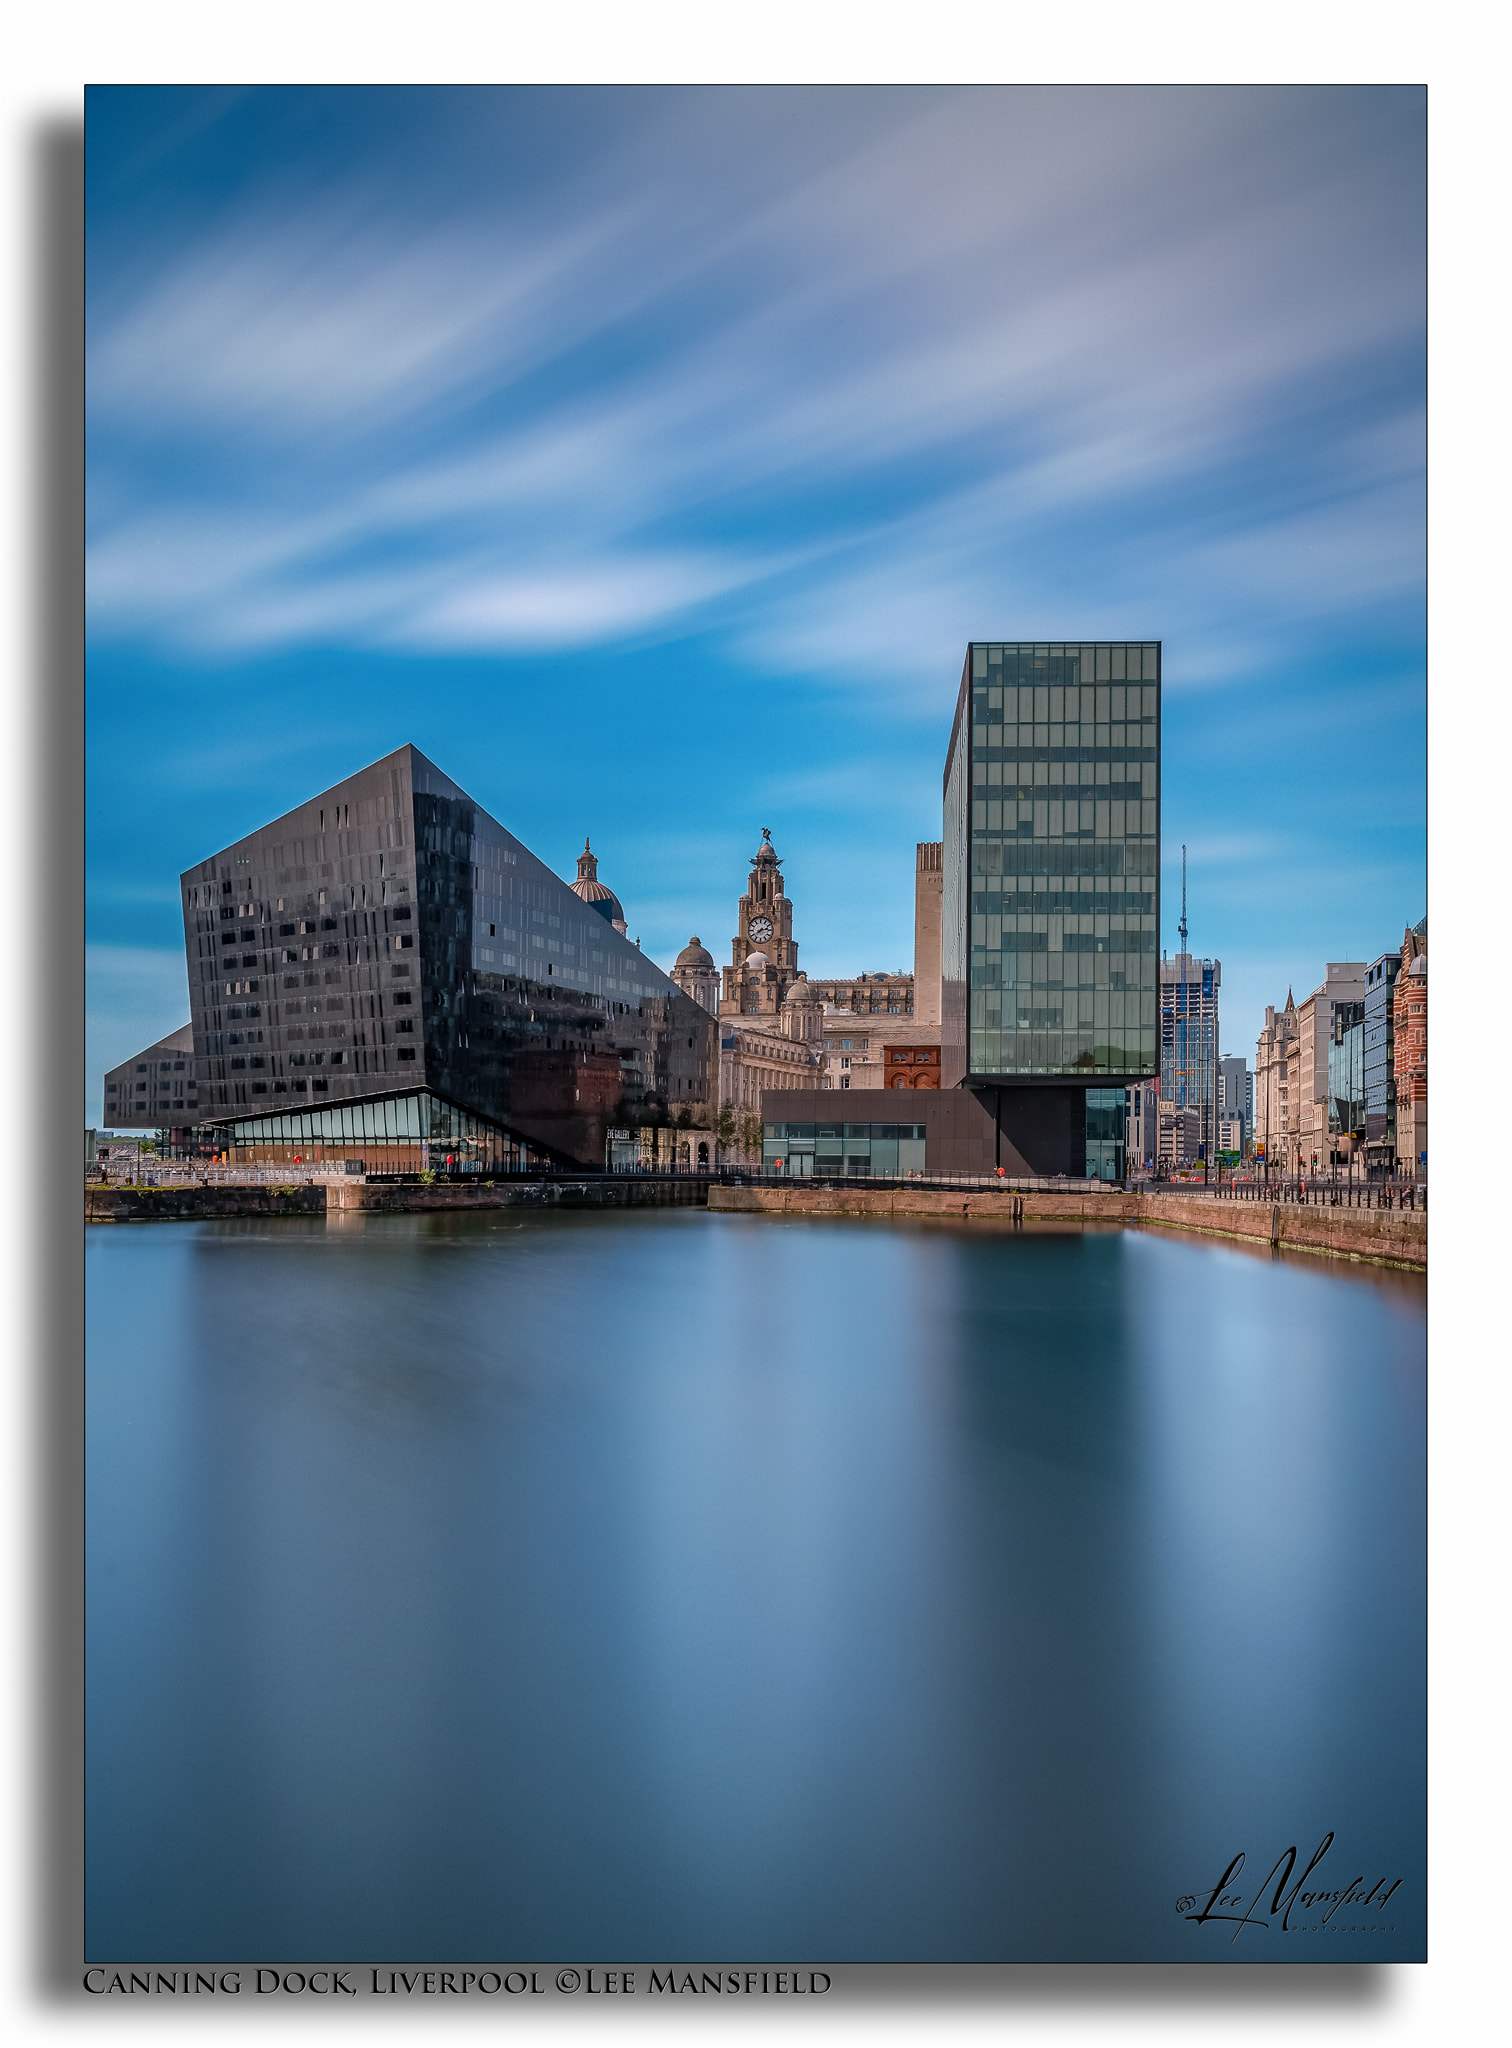 Canning Dock - Liverpool